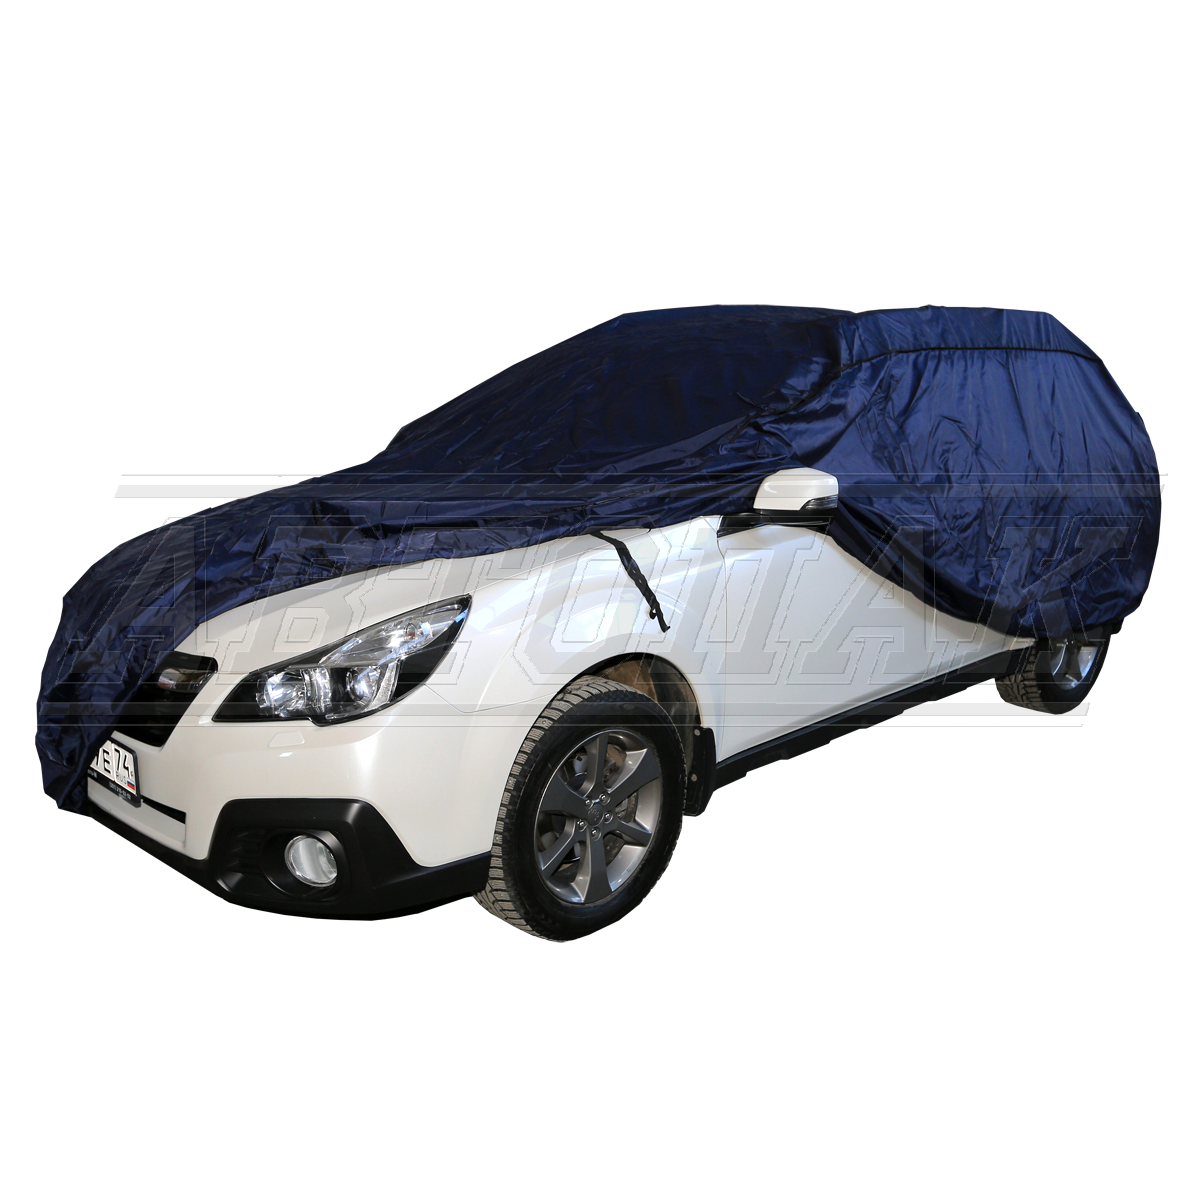 Cover for the entire car